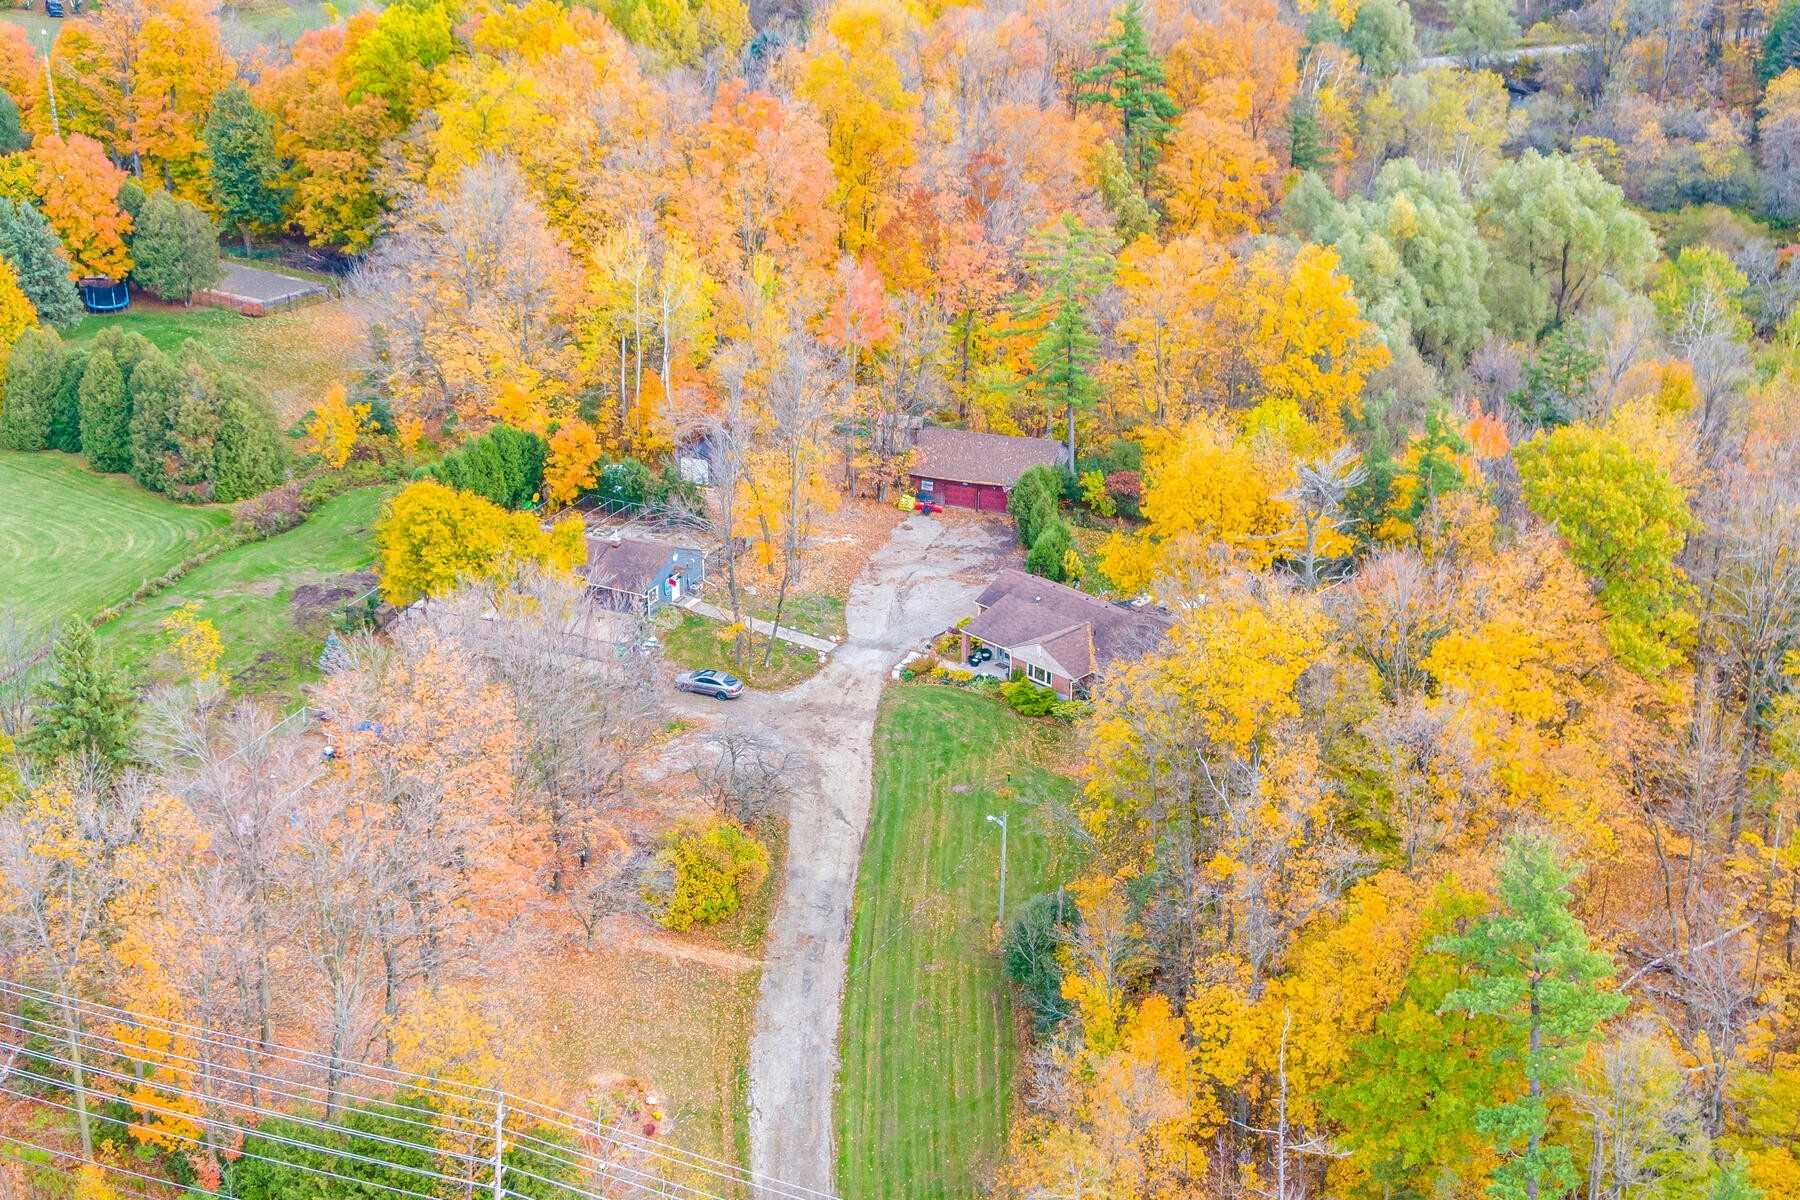 Prime Real Estate On 5.93 Acres W/Fabulous Sidesplit!Ideal Investment Close To Milton, Georgetown & 401. An Opportunity To Work & Play From Your Own Private Oasis. Established 16 Stall Kennel W/$100K Reno In '18. Many Outbuildings Including Updated Kennel,Huge Shed & Large Garage W/Versatile Uses.Spacious Open Concept Living Space W/Separate Four-Season Sunroom & Incredible Country Views! Massive Renovated Gourmet Kitchen Perfect For Large Family Gatherings.